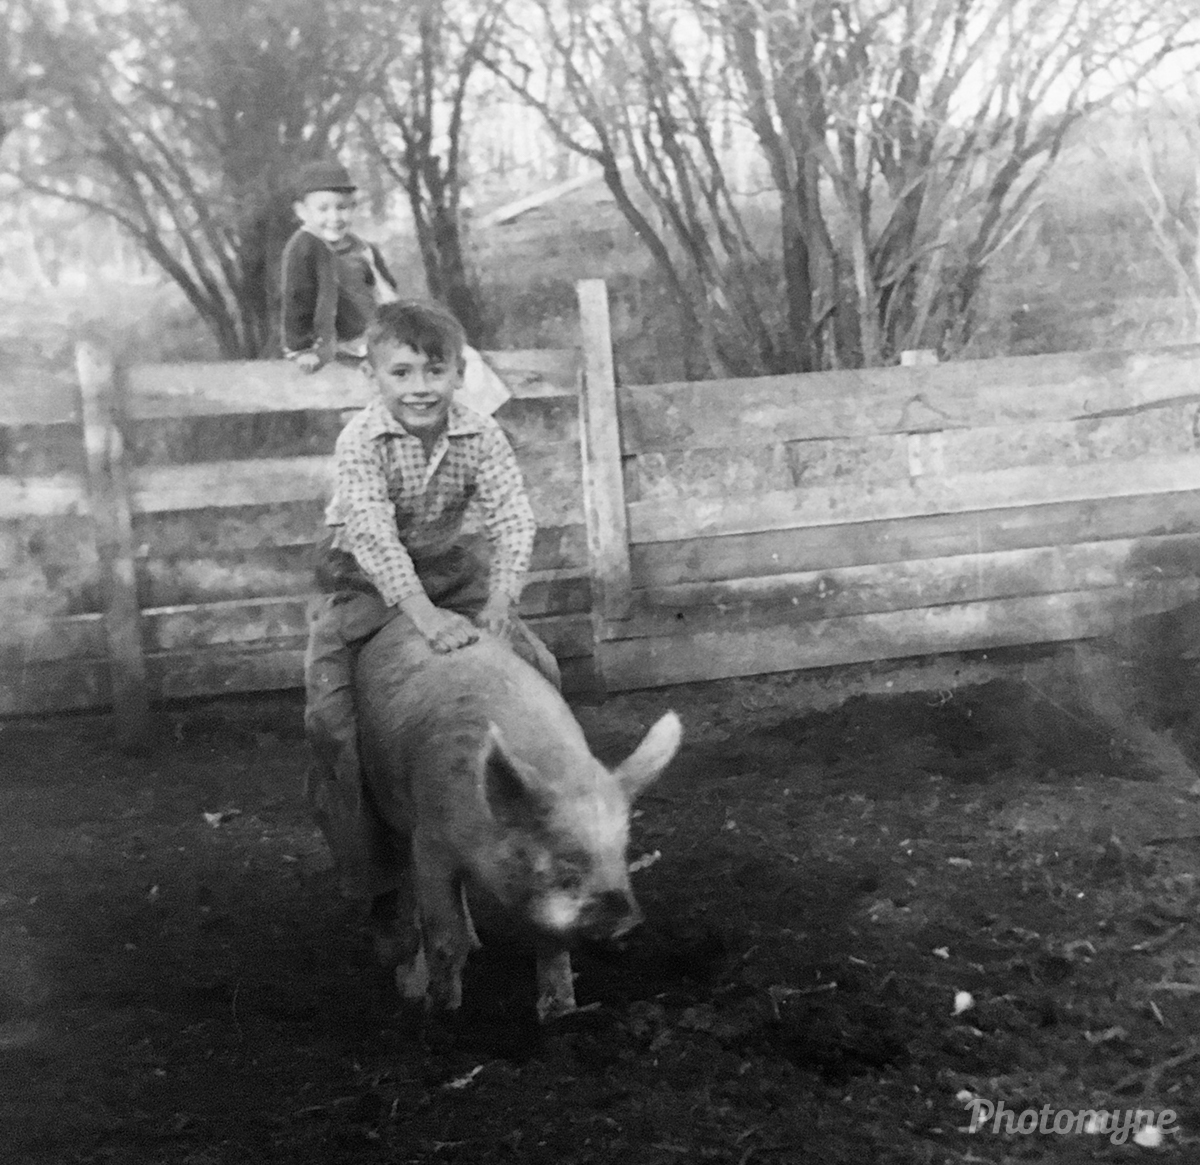 Pet pig riding. Alberta, Canada (year unknown)